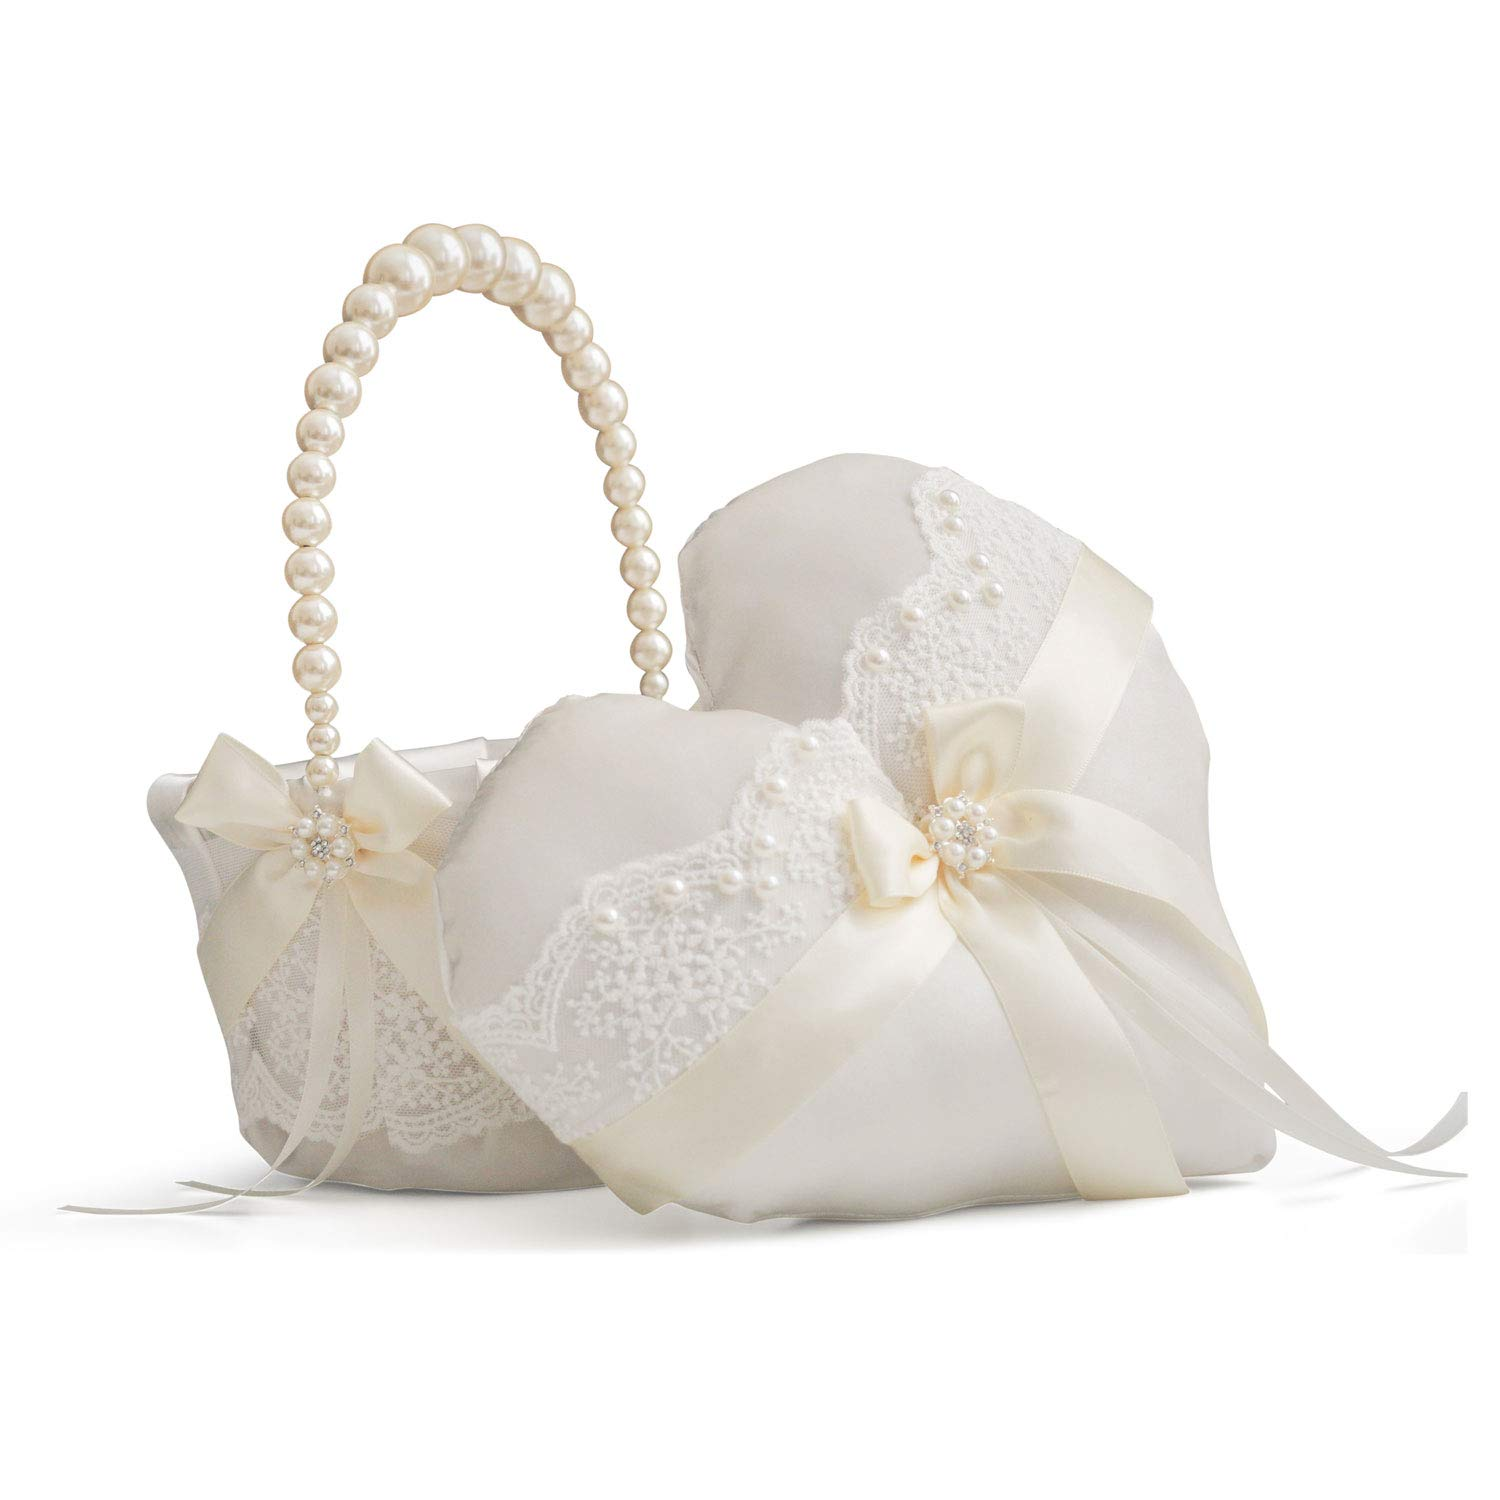 Alex Emotions Ivory Ring Bearer Pillow and Flower Girl Basket Set, Heart Ring Pillow, Lace Wedding Basket, Pearl Handle Basket, Ivory Ring Holder, Ivory Flower Baskets, Ivory Wedding Pillow by Alex Emotions